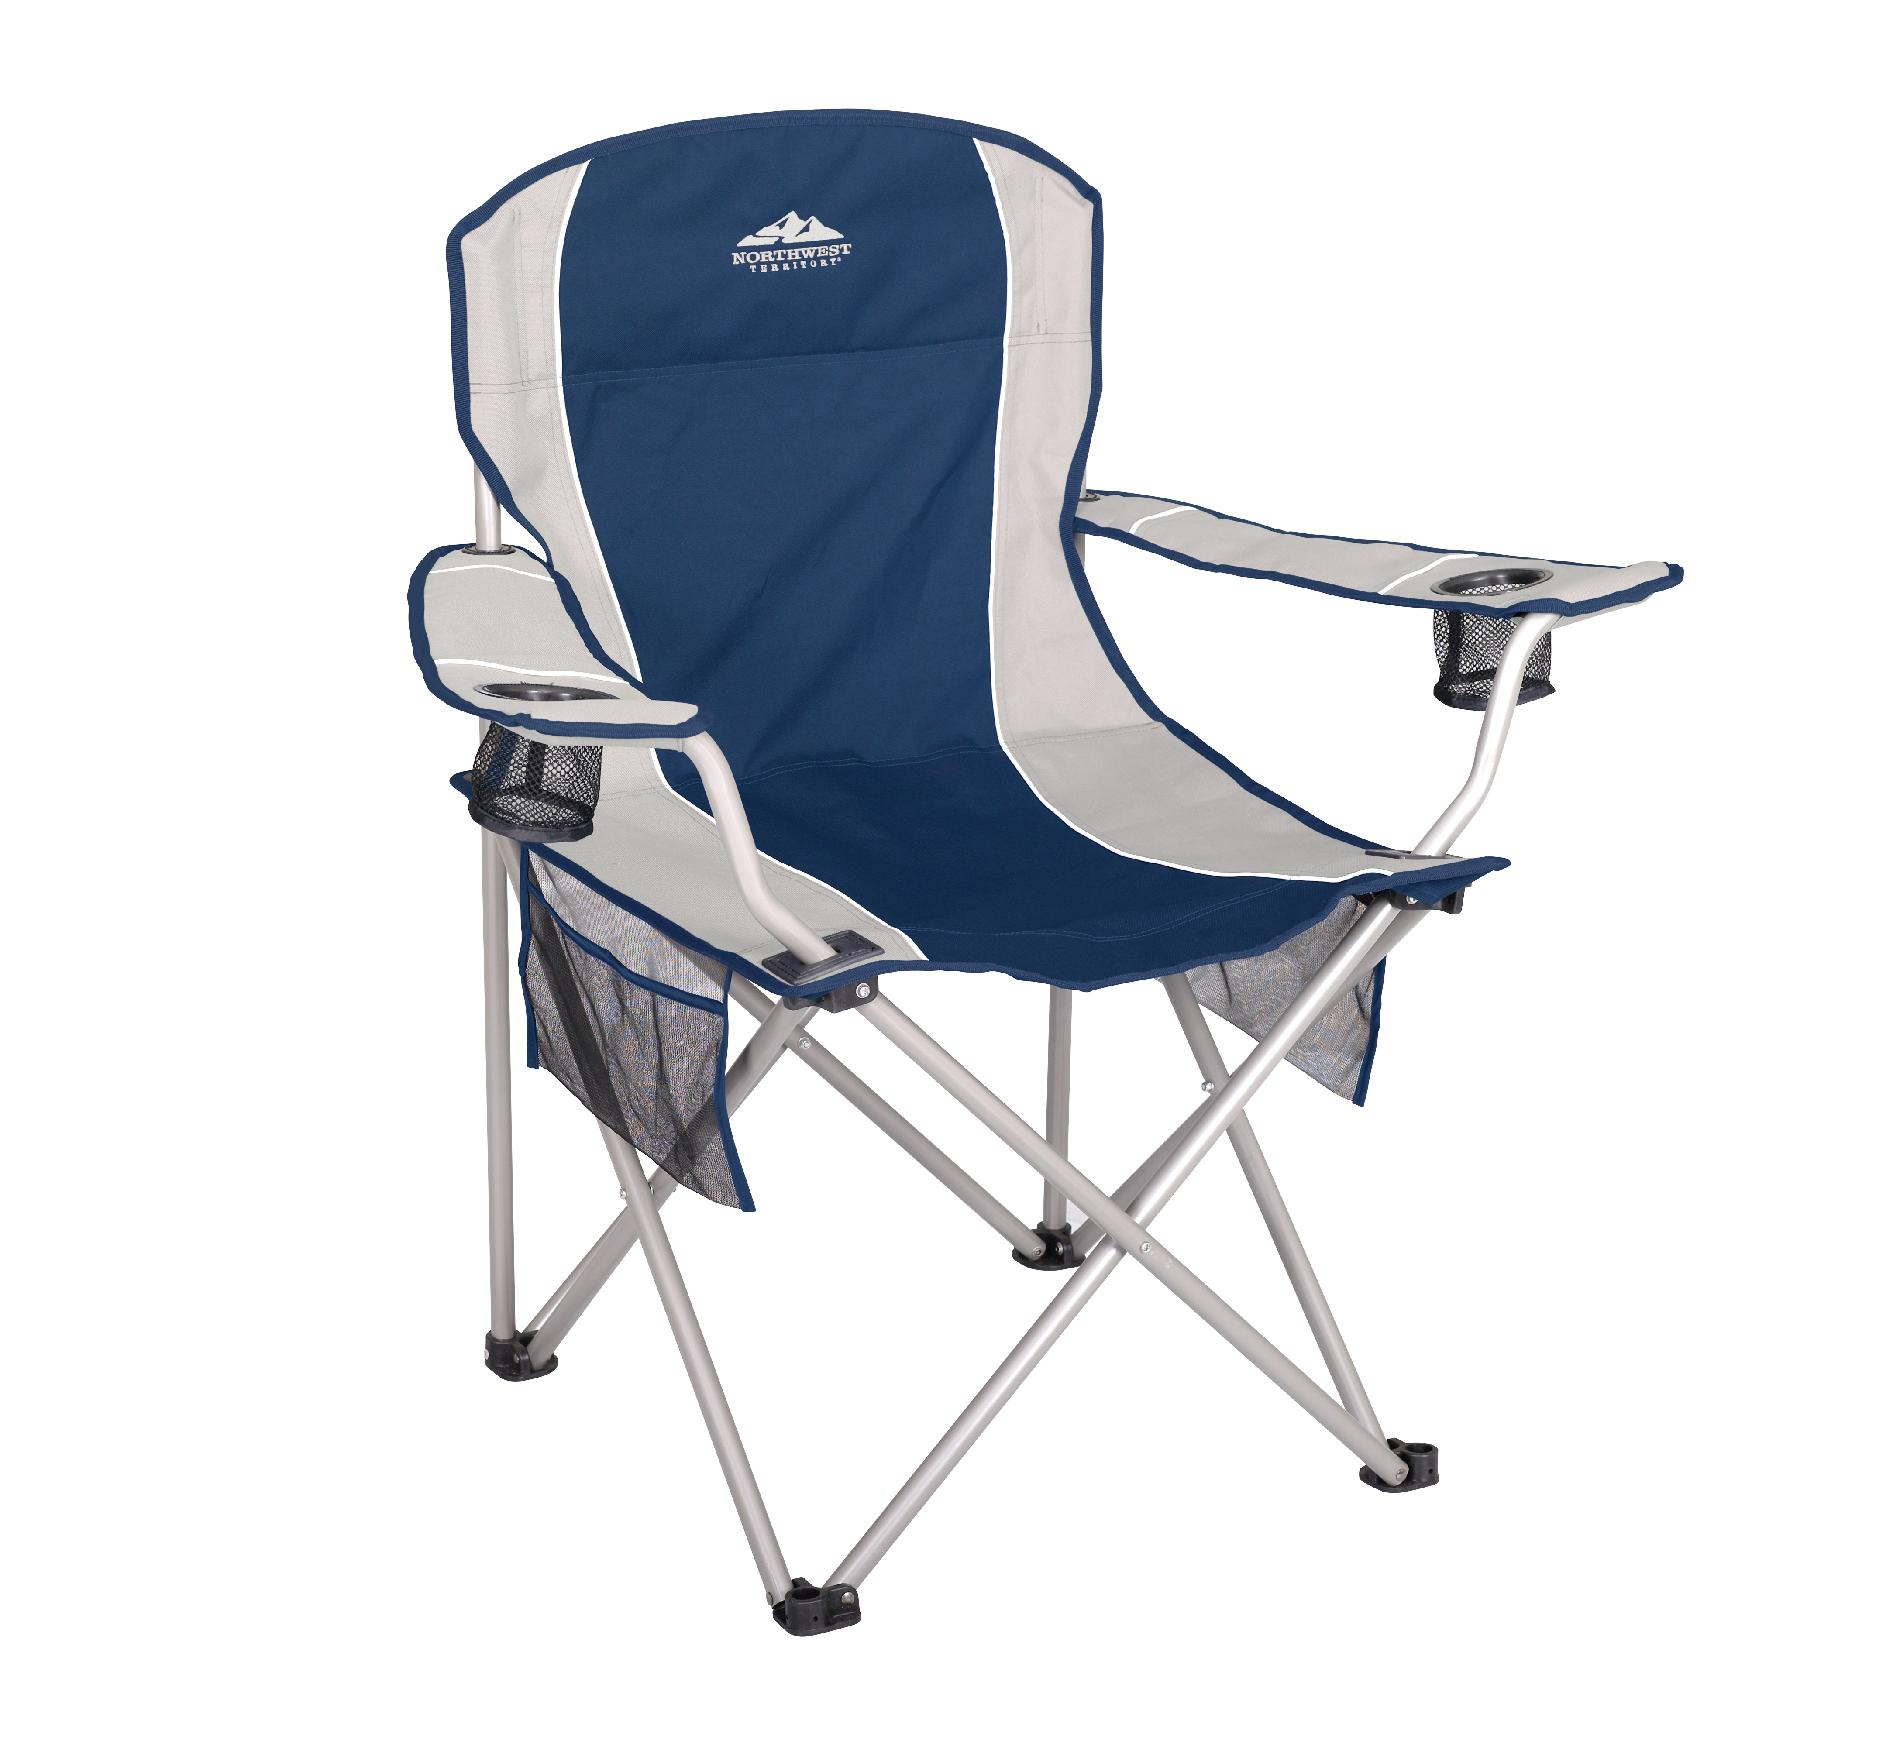 northwest territory chairs kids computer desk and chair set blue large folding a comfortable camp seat from kmart